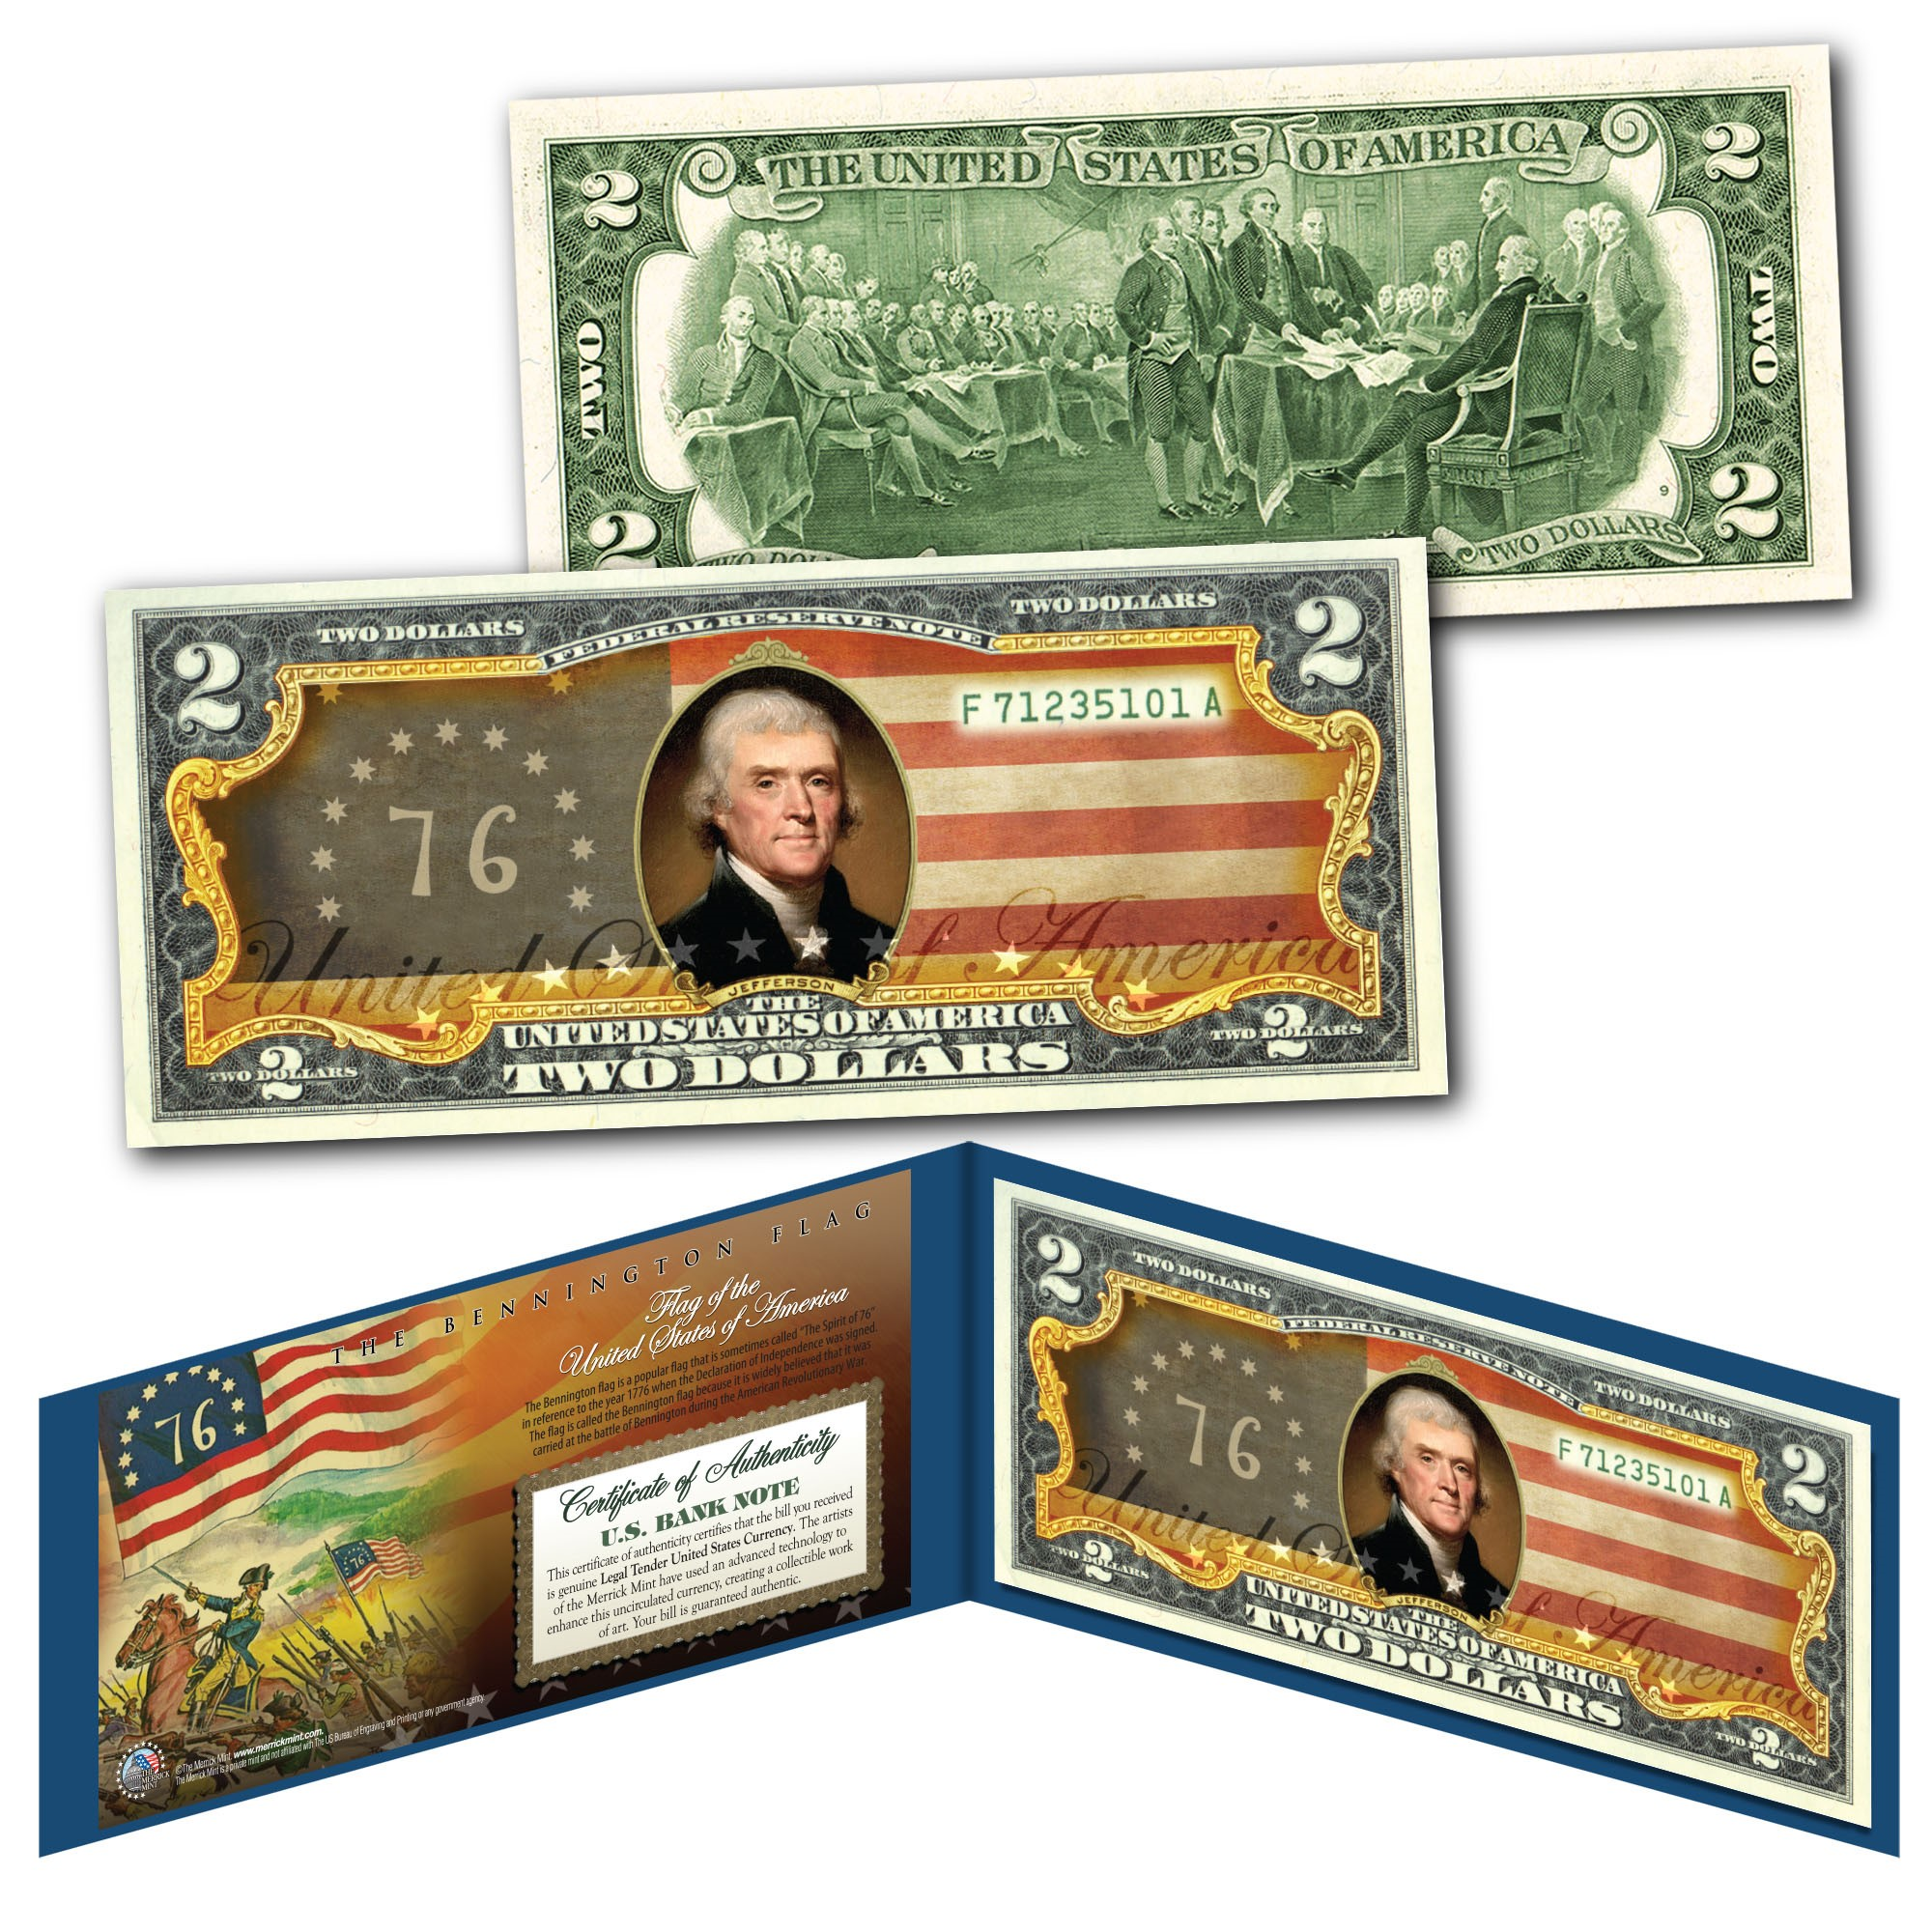 Declaration of Independence S//N of 76 Rency SIGNED on Genuine $2 US Bill Life